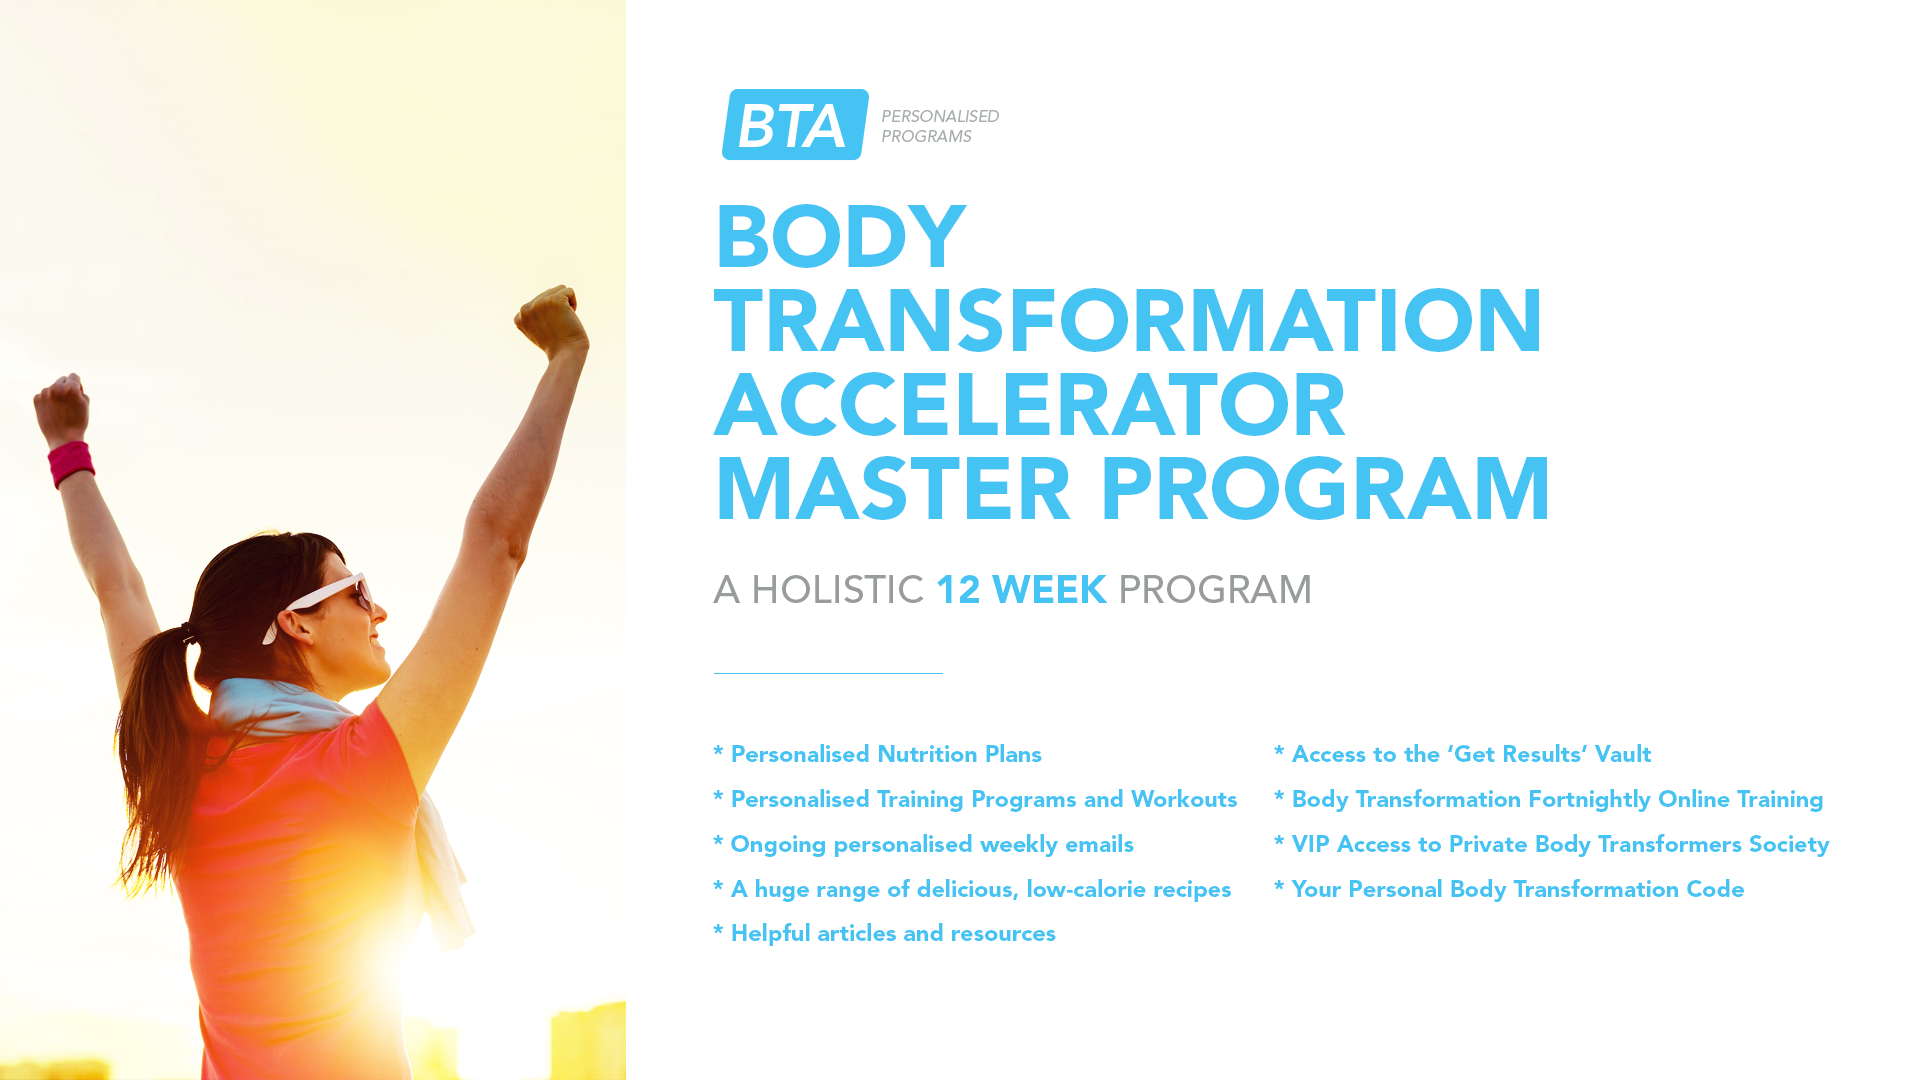 Body Transformation Accelerator Master Program